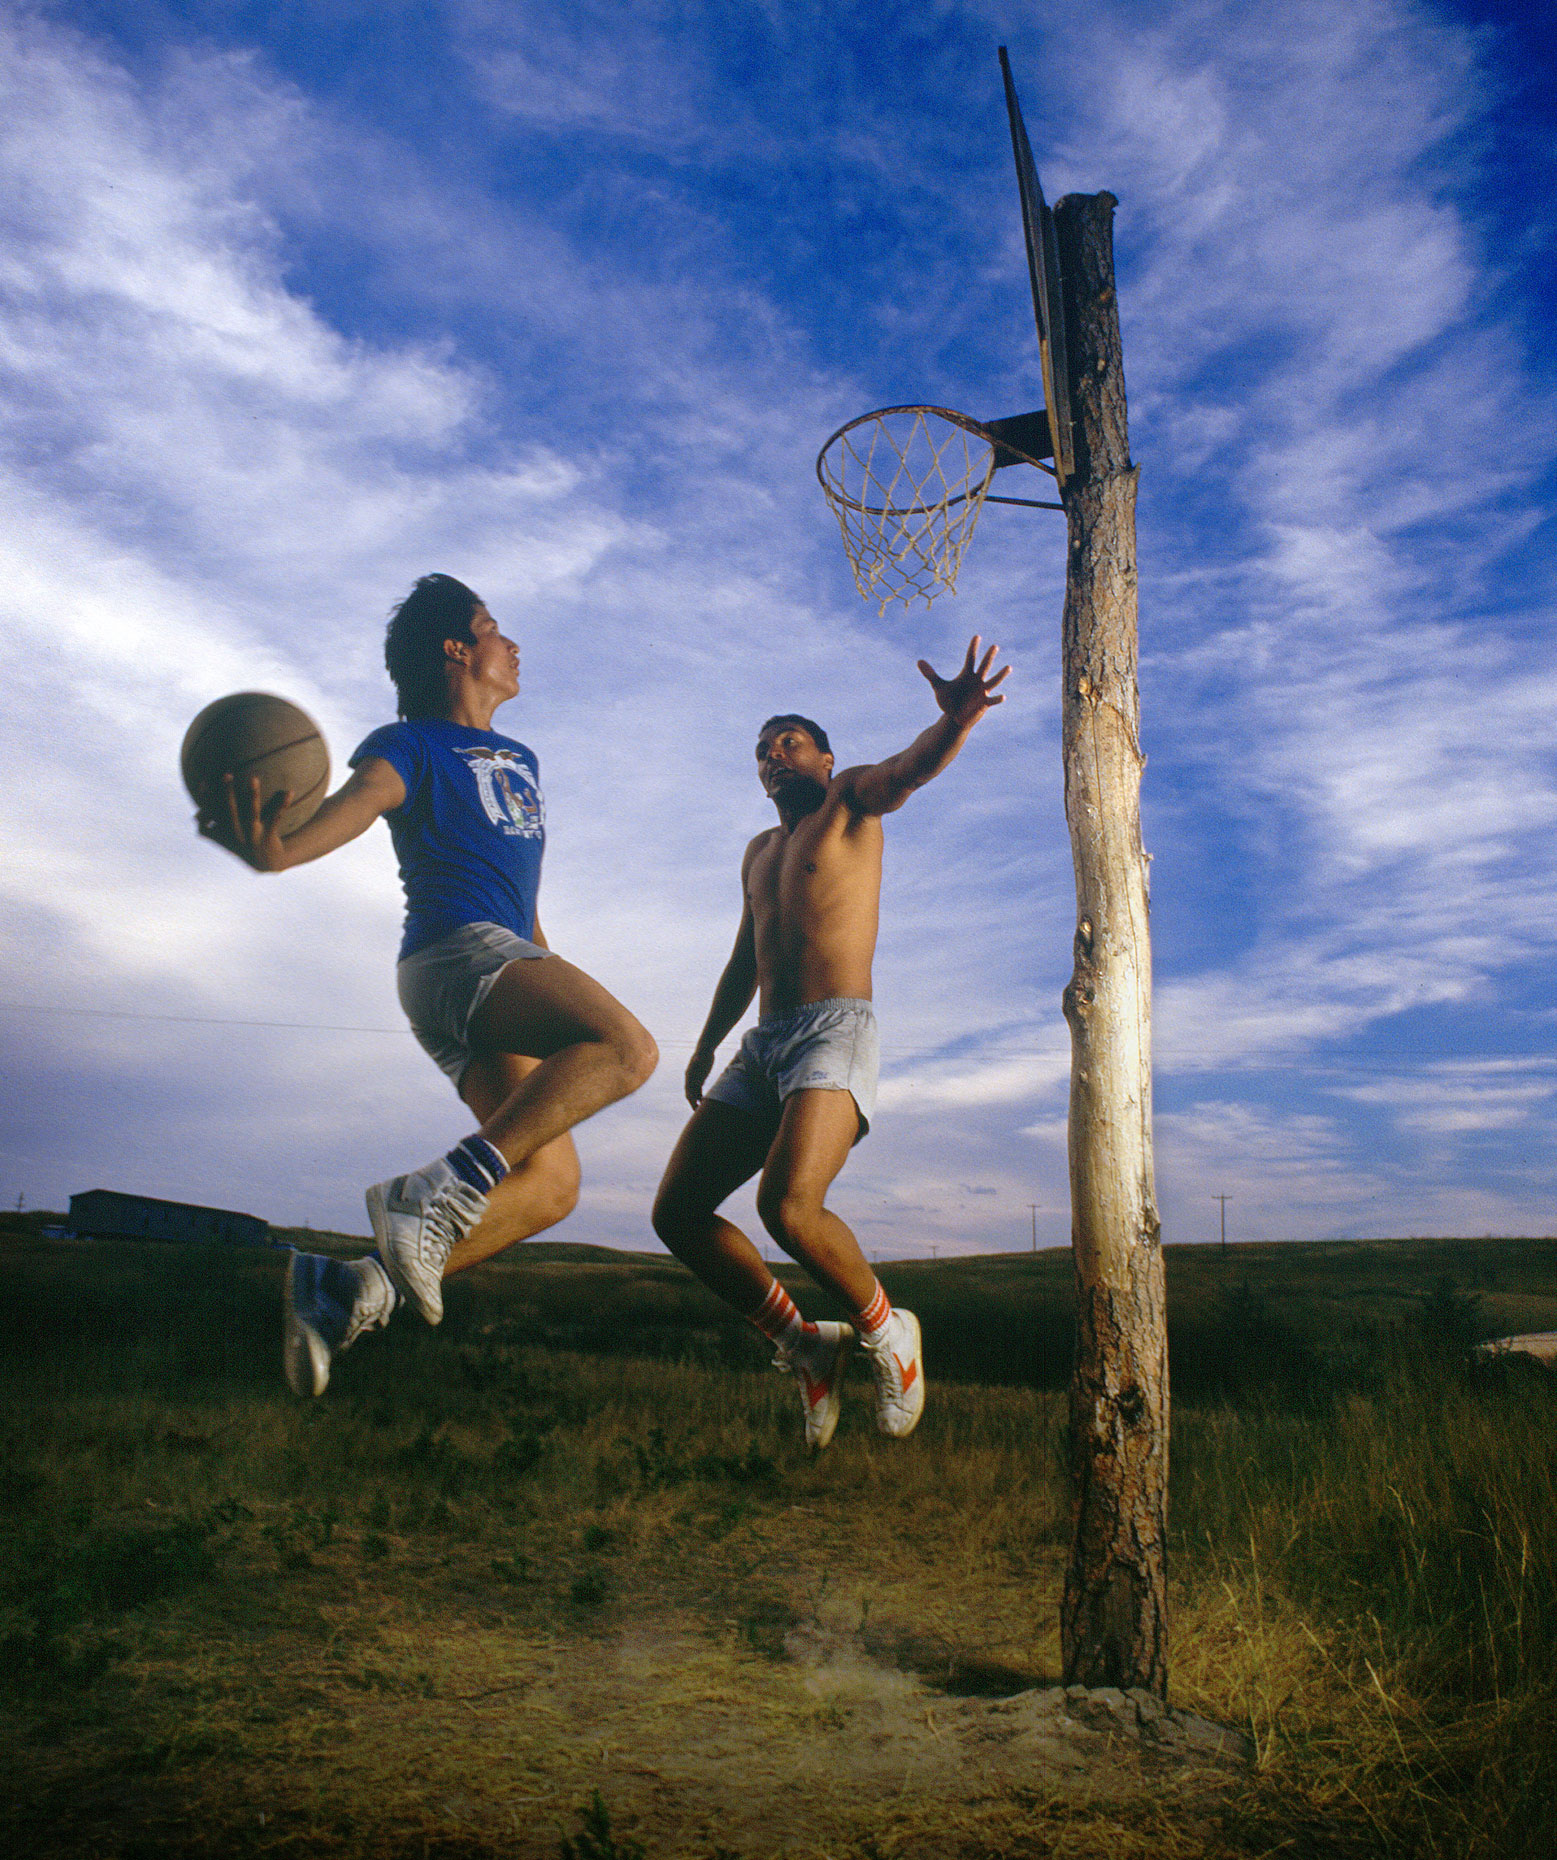 Two native American basketball players use a hoop nailed to a tree to play.